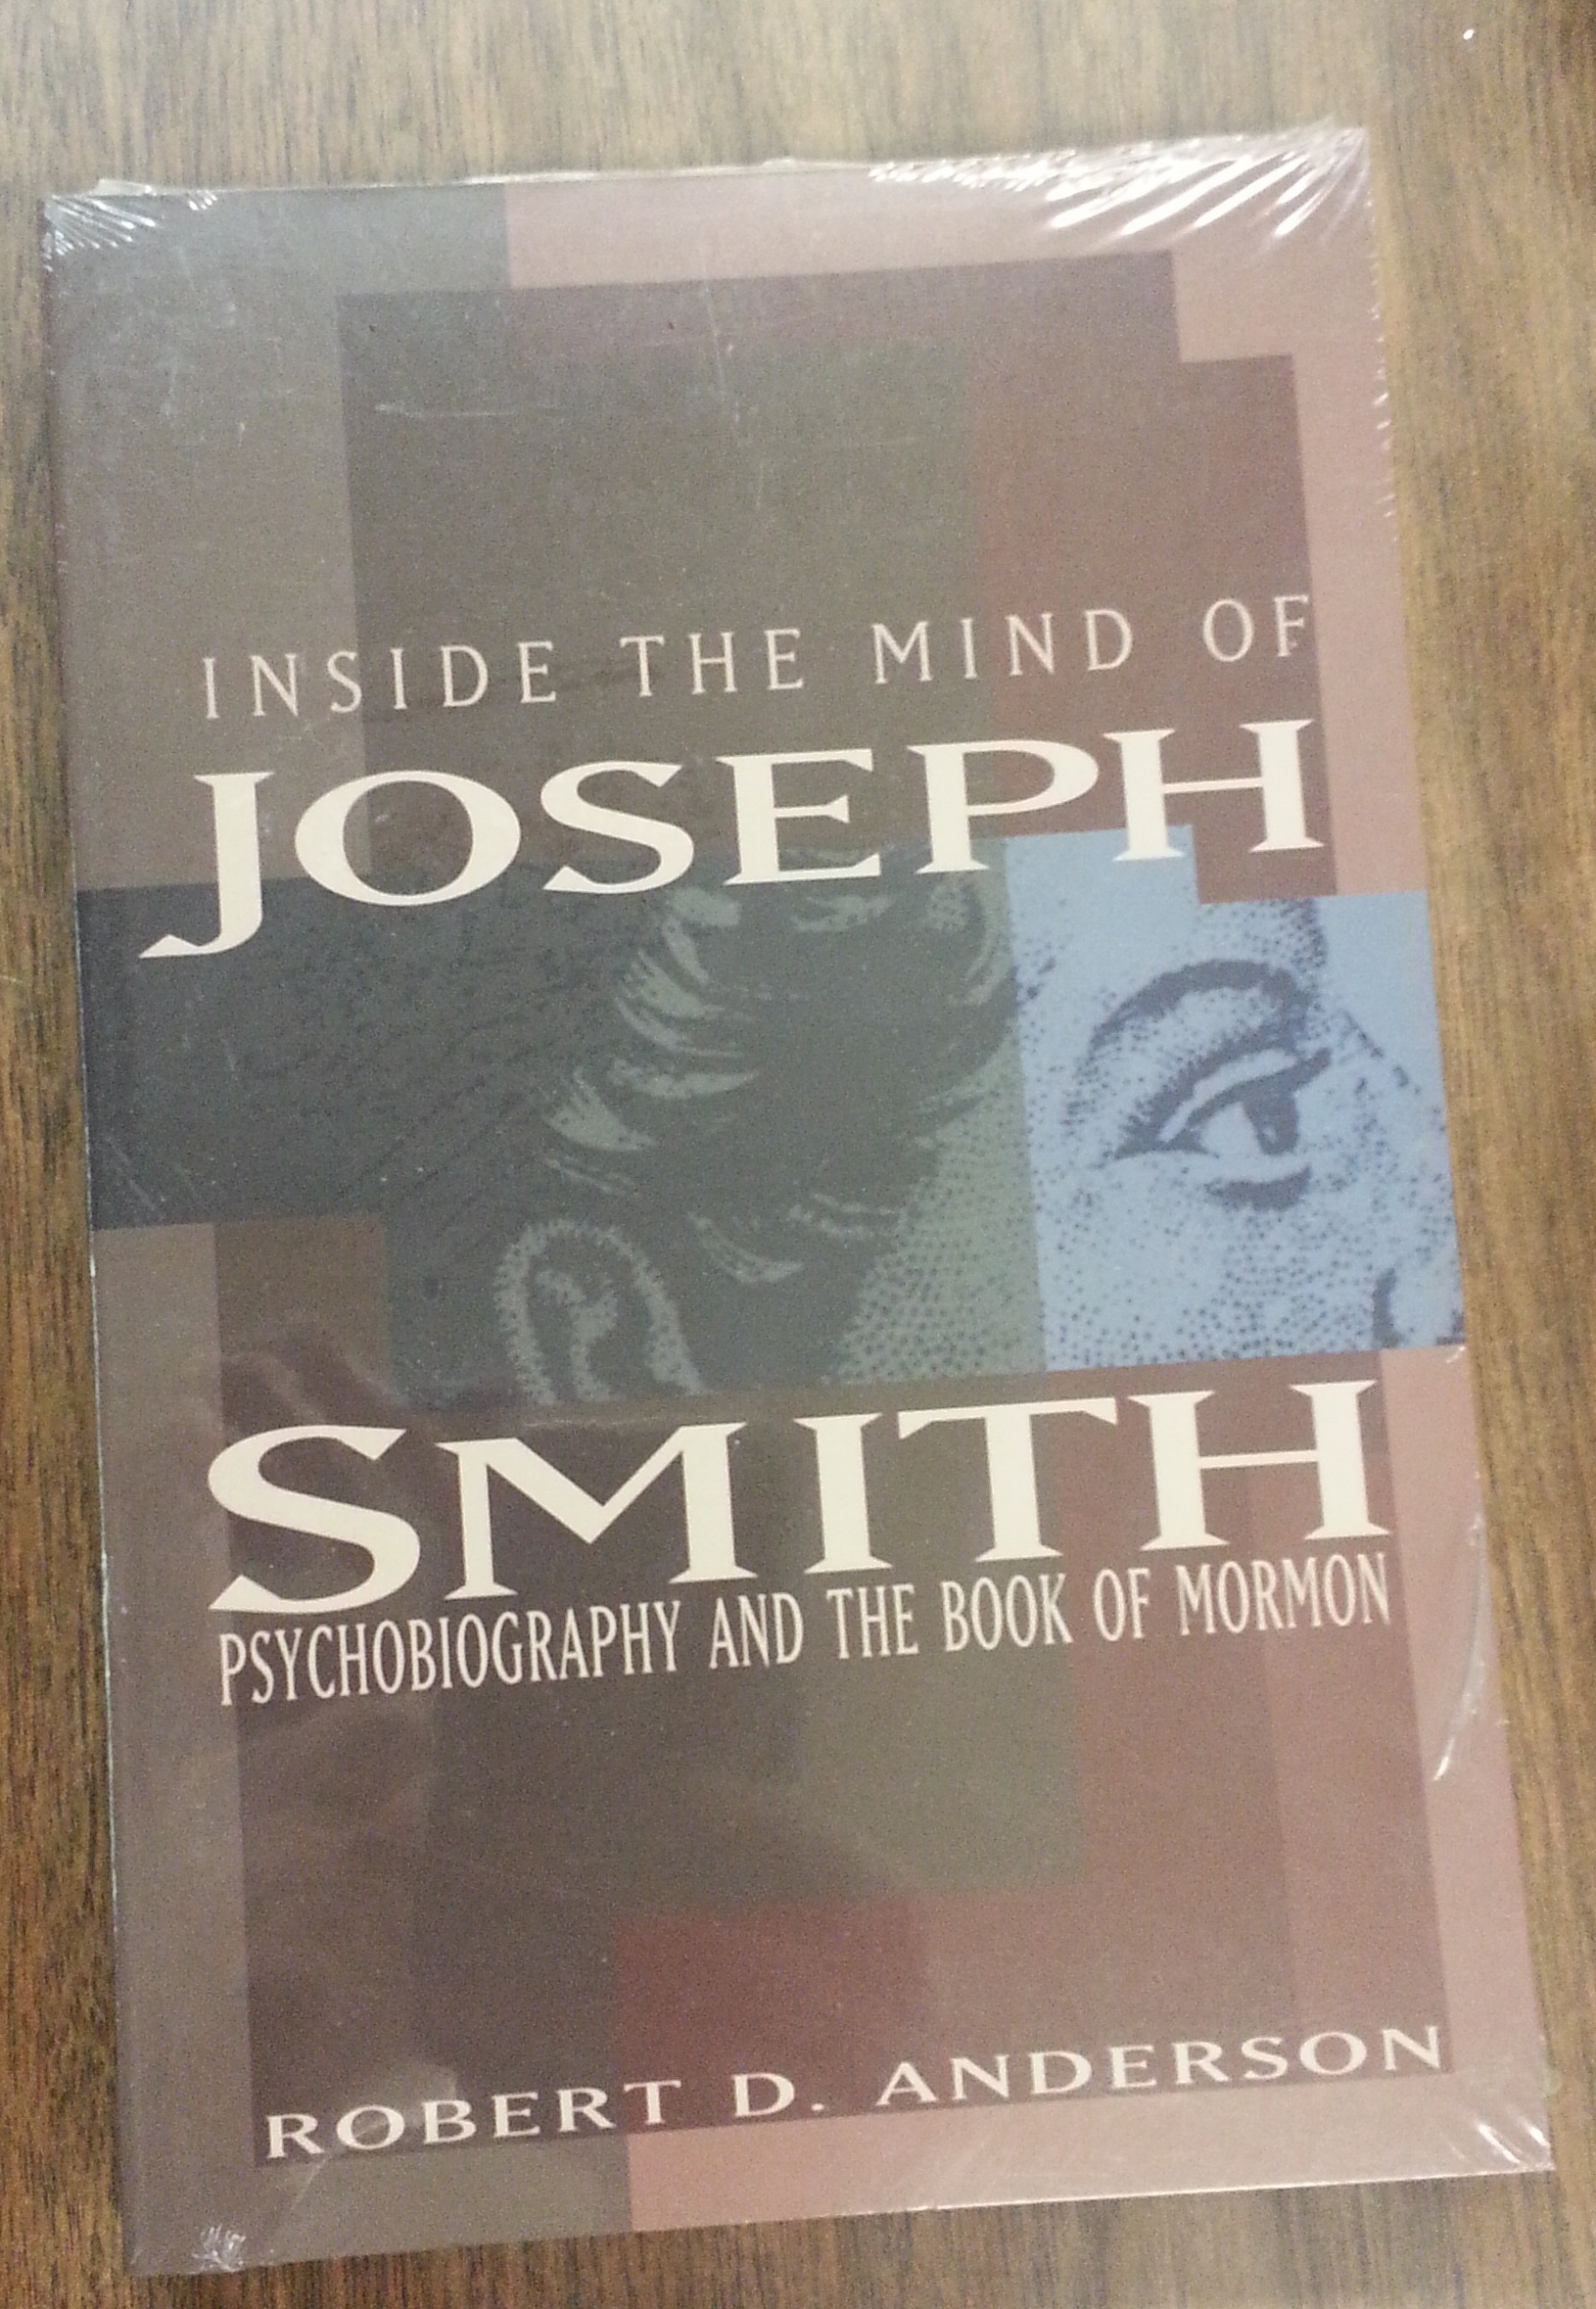 Image for INSIDE THE MIND OF JOSEPH SMITH - Psychobiography and the Book of Mormon